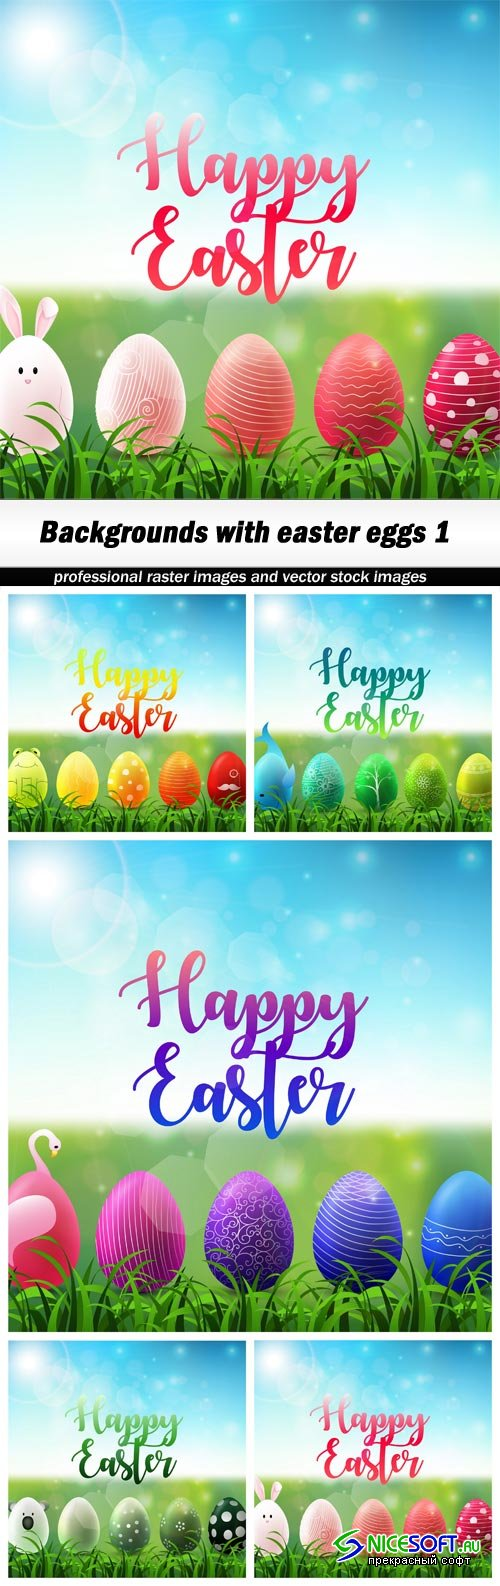 Backgrounds with easter eggs 1 - 5 UHQ JPEG